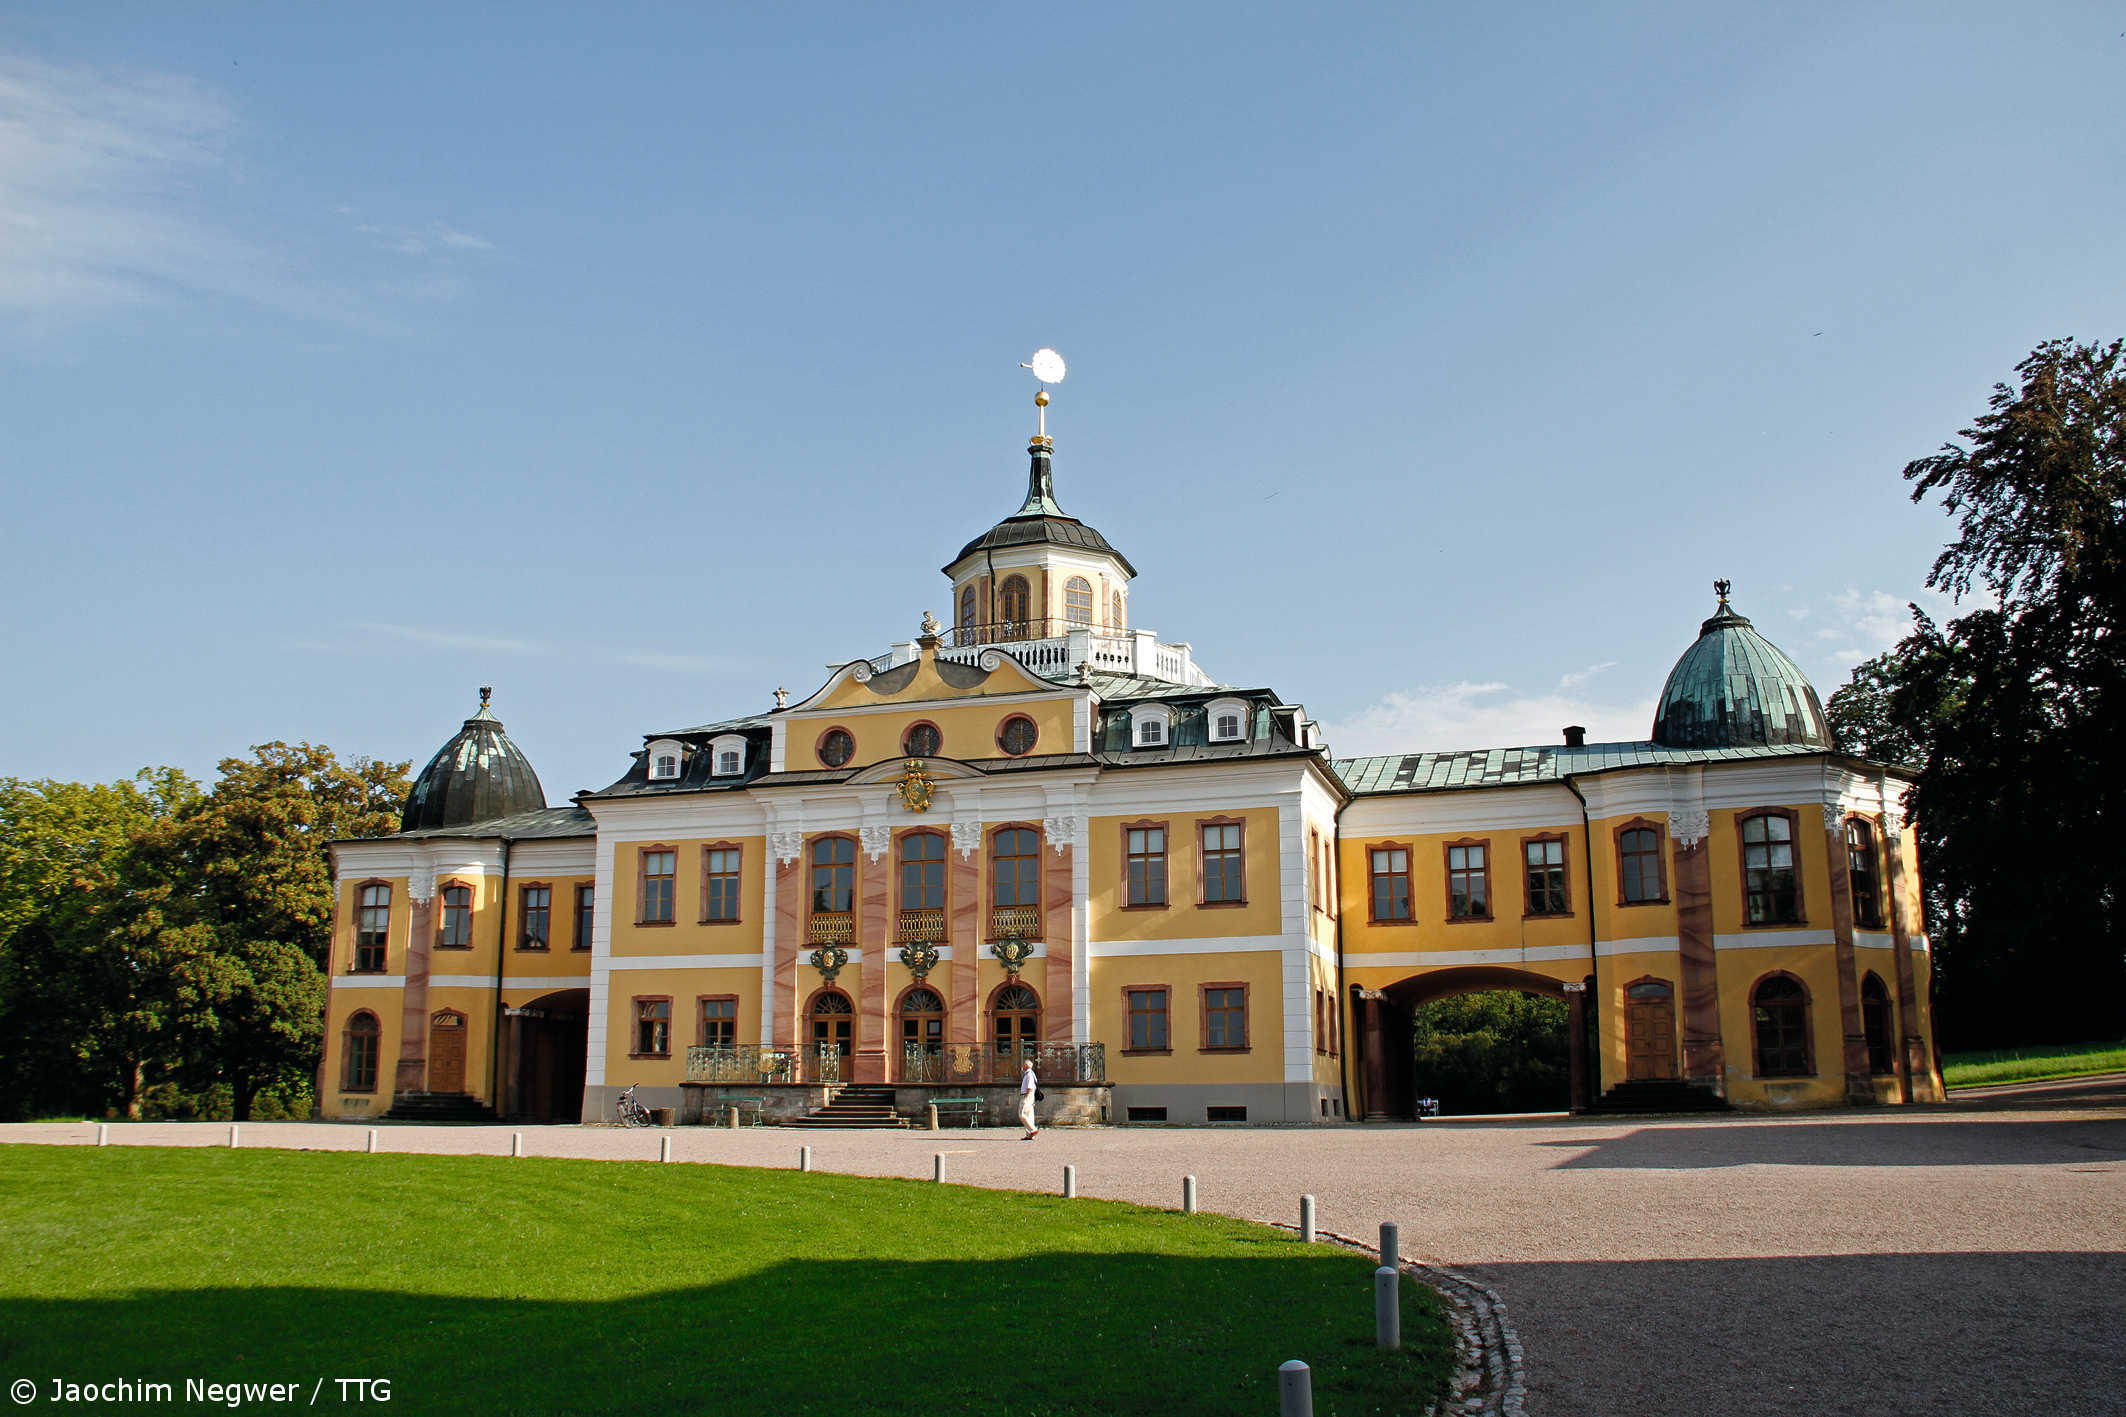 Wittumspalais Saxony, Saxony-Anhalt and Thuringia, Duchess Anna Amalia Library, Weimar, Germany; part of the UNESCO ...